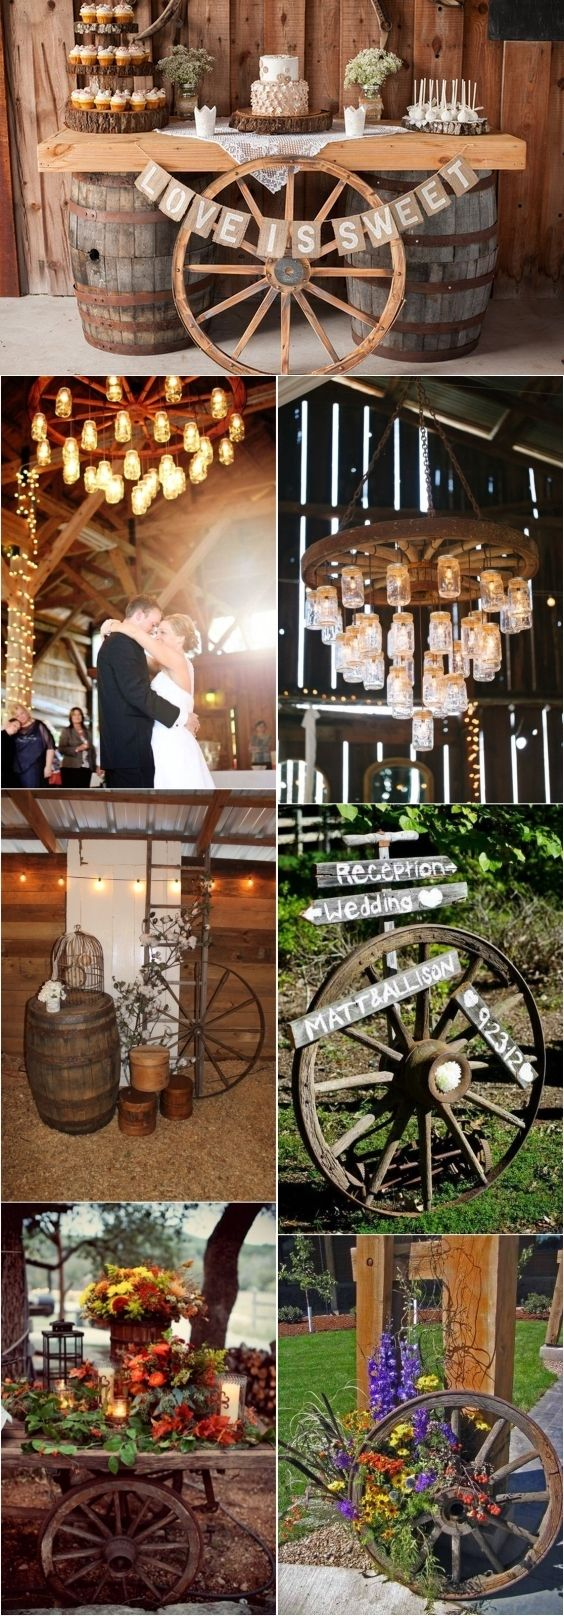 best themed weddings images on pinterest wedding ideas